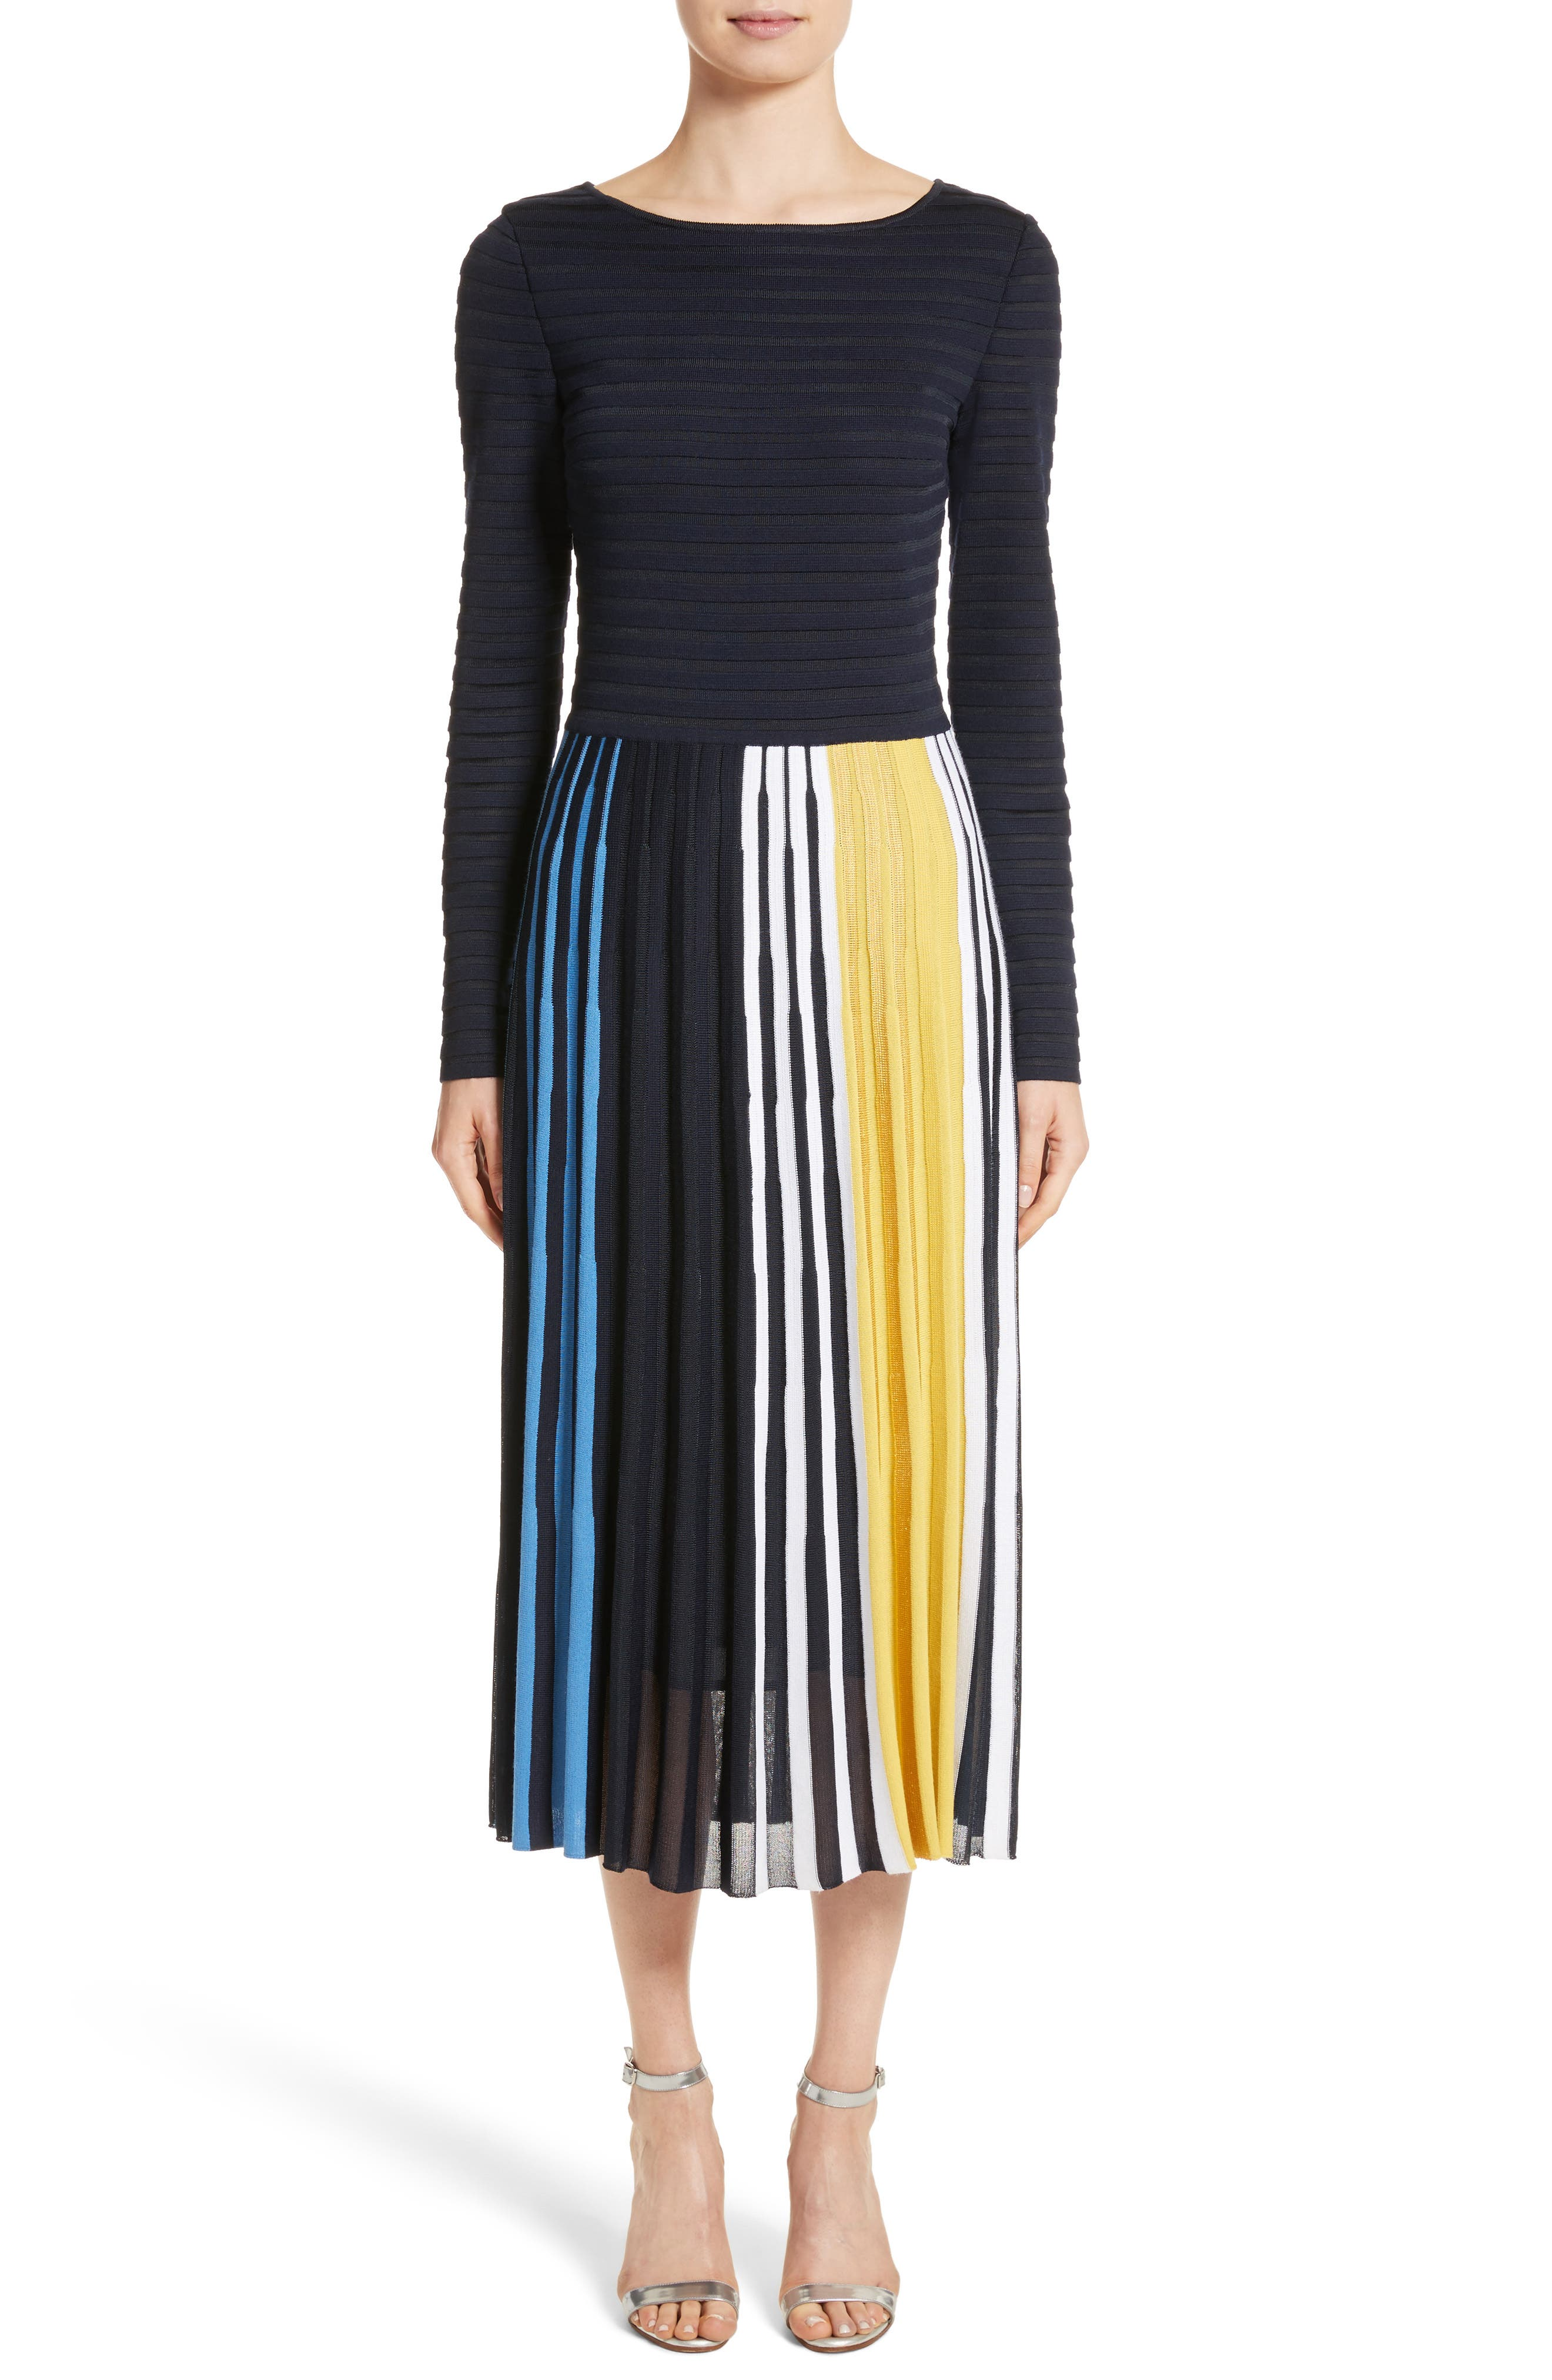 Alternate Image 1 Selected - St. John Collection Multicolor Ombré Placed Stripe Knit Dress